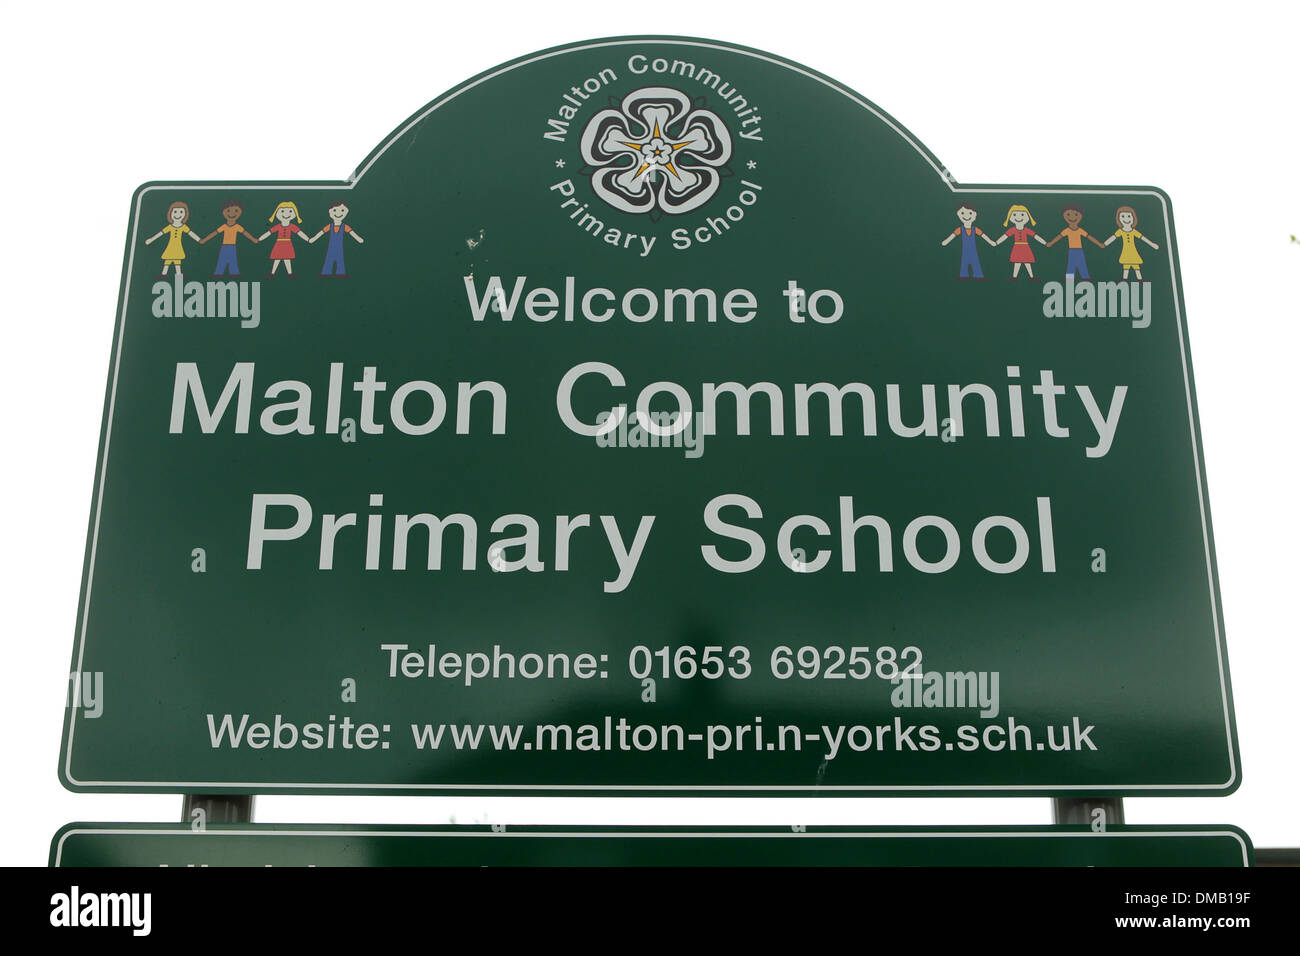 Malton Community Primary School. - Stock Image